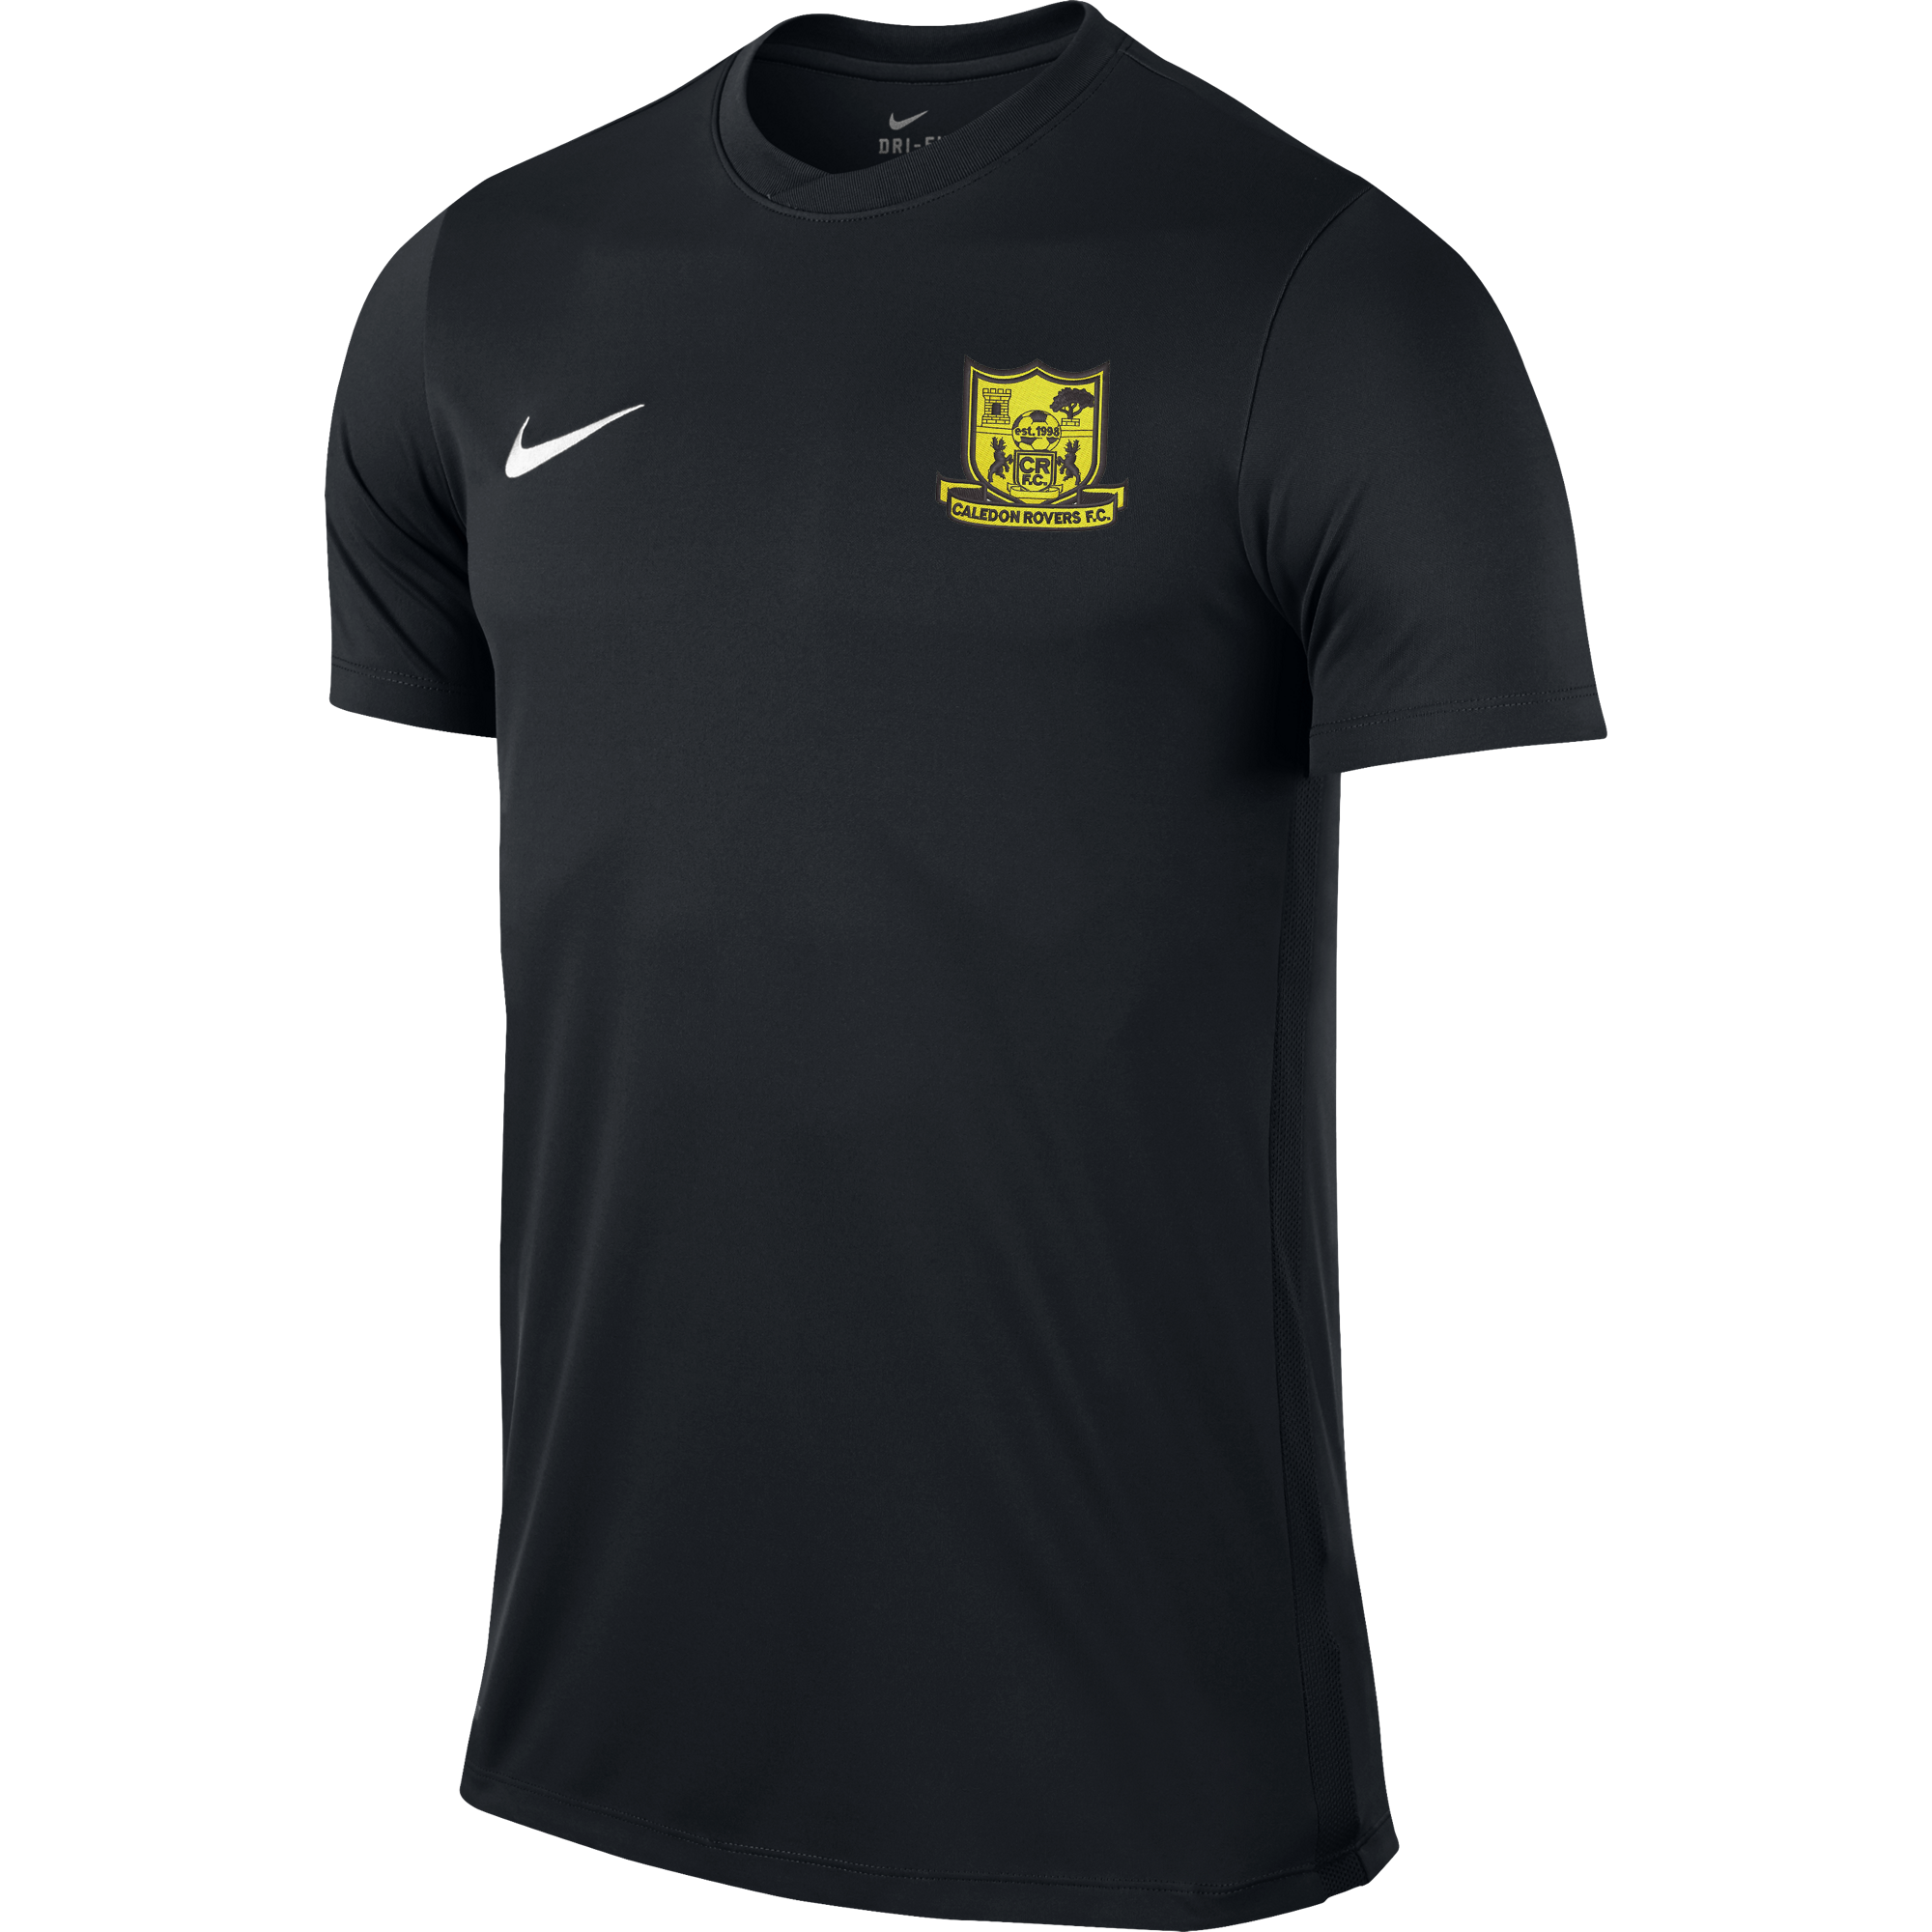 caledon rovers fc training tee 35790 p